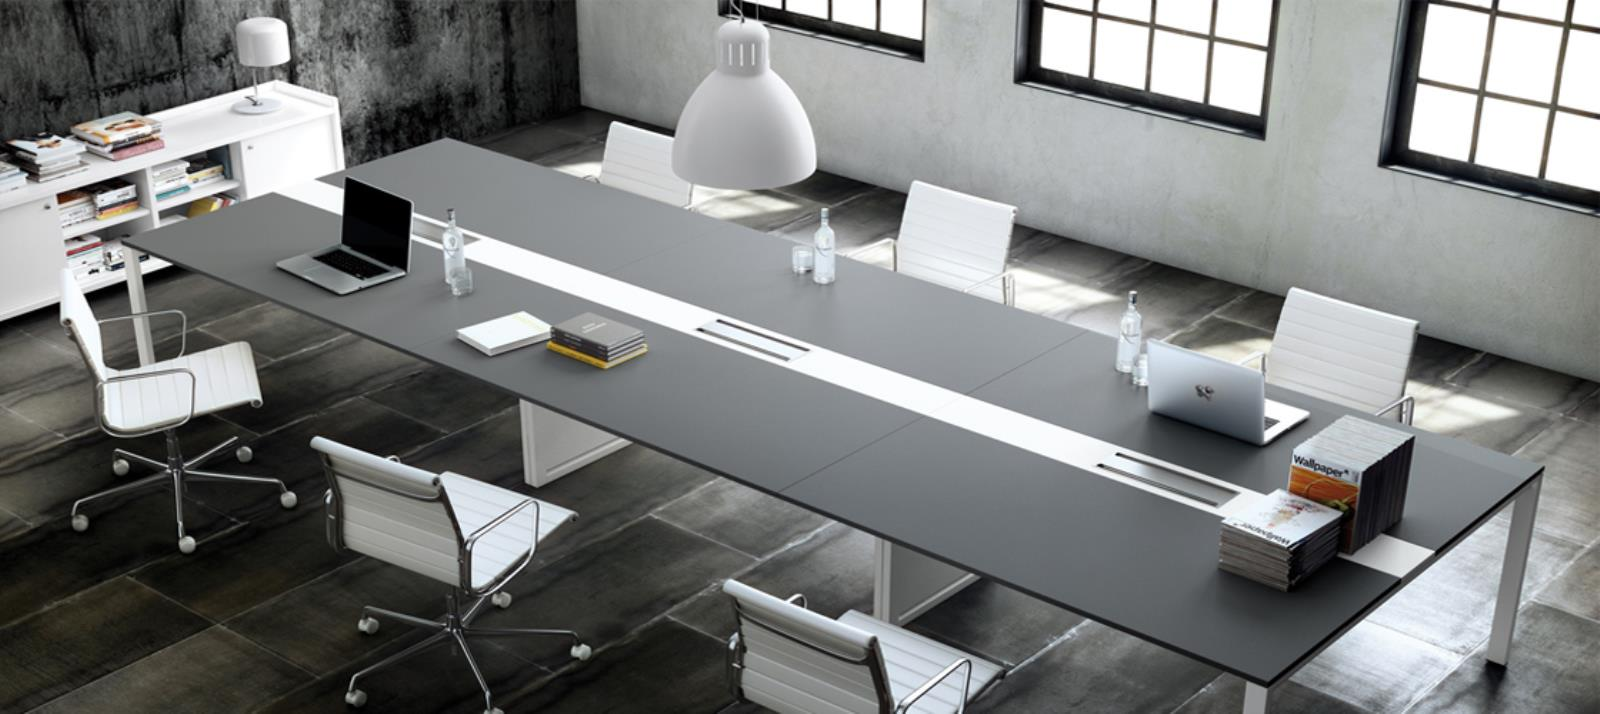 Muebles De Oficina Stunning Q Gerencial With Muebles De Oficina  # Vahume Muebles Cordoba